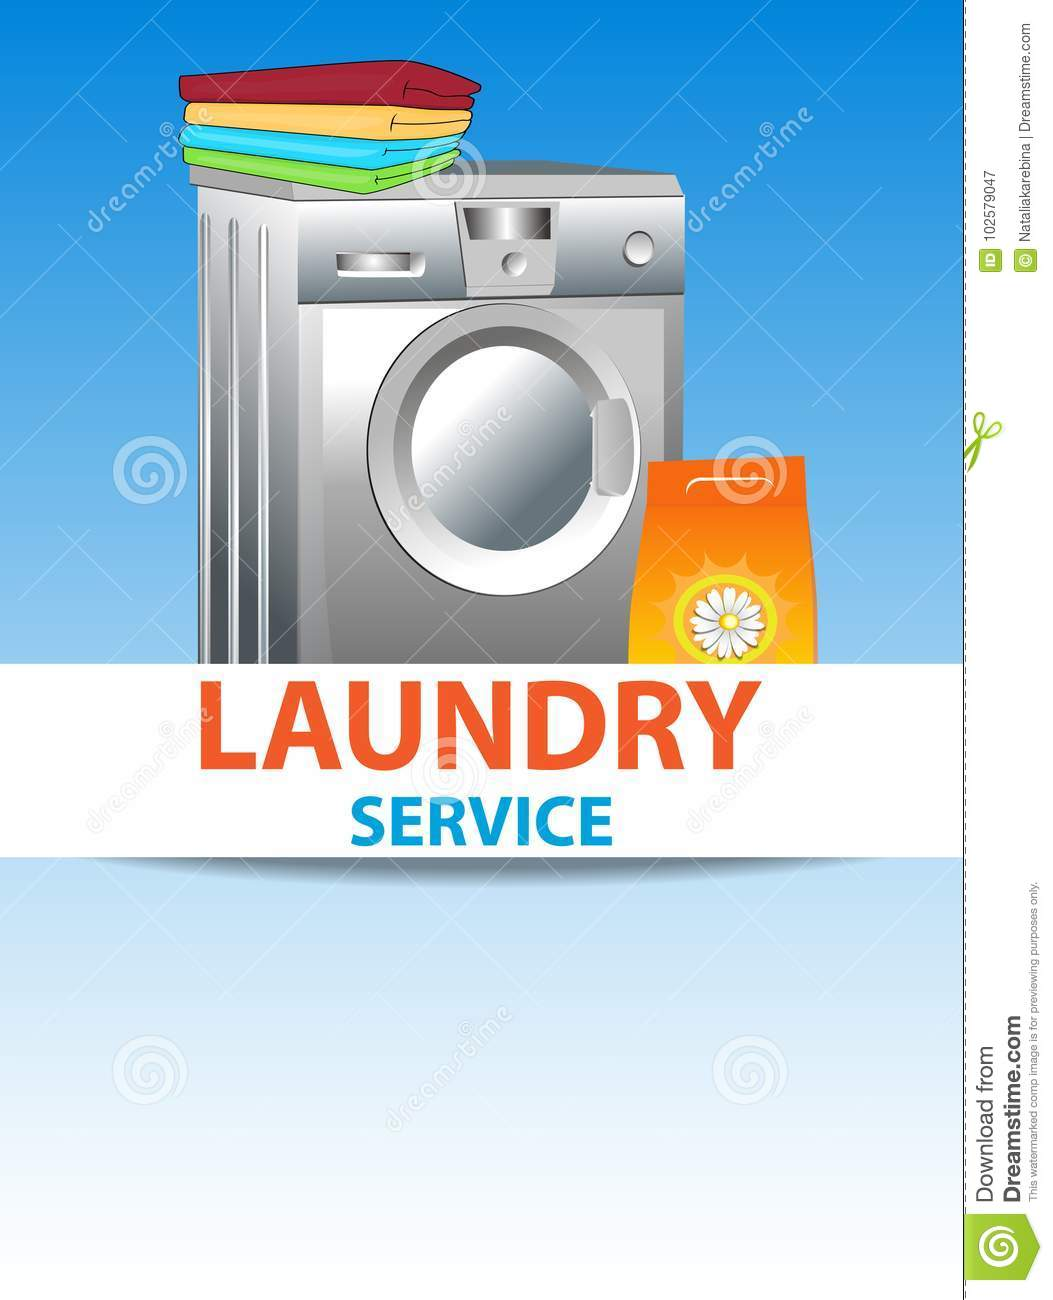 Background Banner Laundry : background, banner, laundry, Poster, Laundry, Stock, Illustrations, 1,617, Illustrations,, Vectors, Clipart, Dreamstime